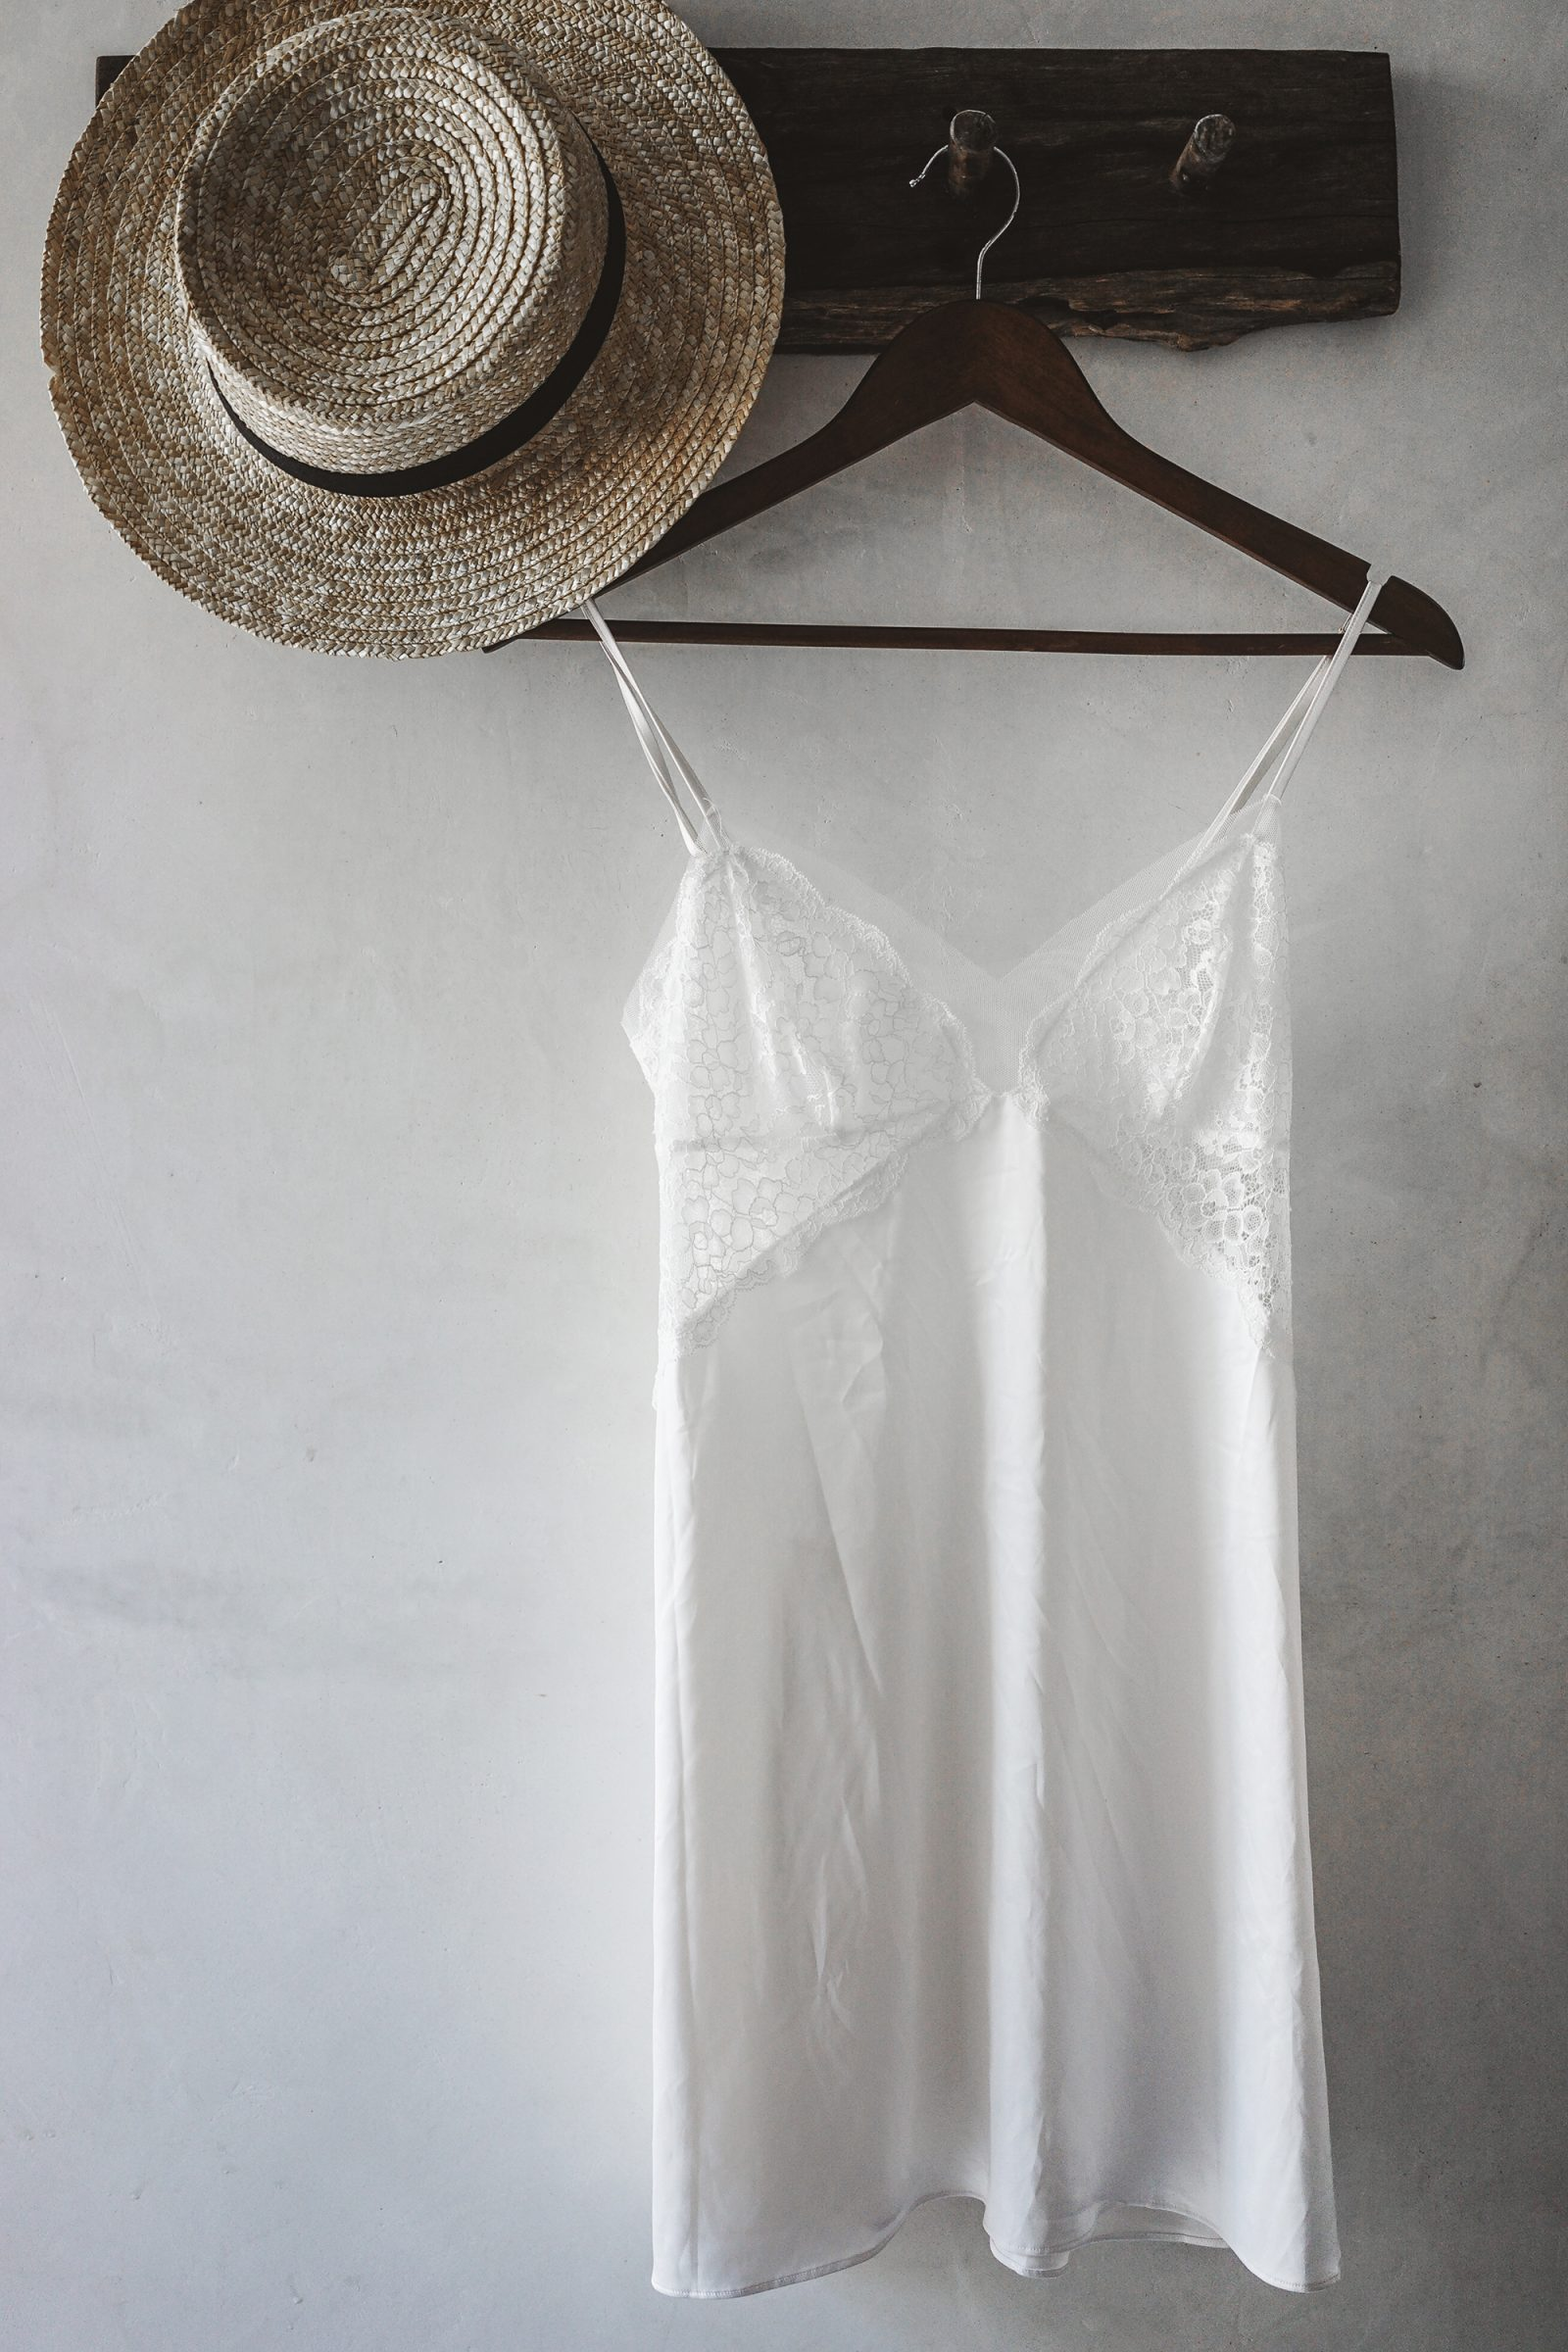 slip_dress-sanara_tulum-beach-mexico-outfit-collage_vintage-2